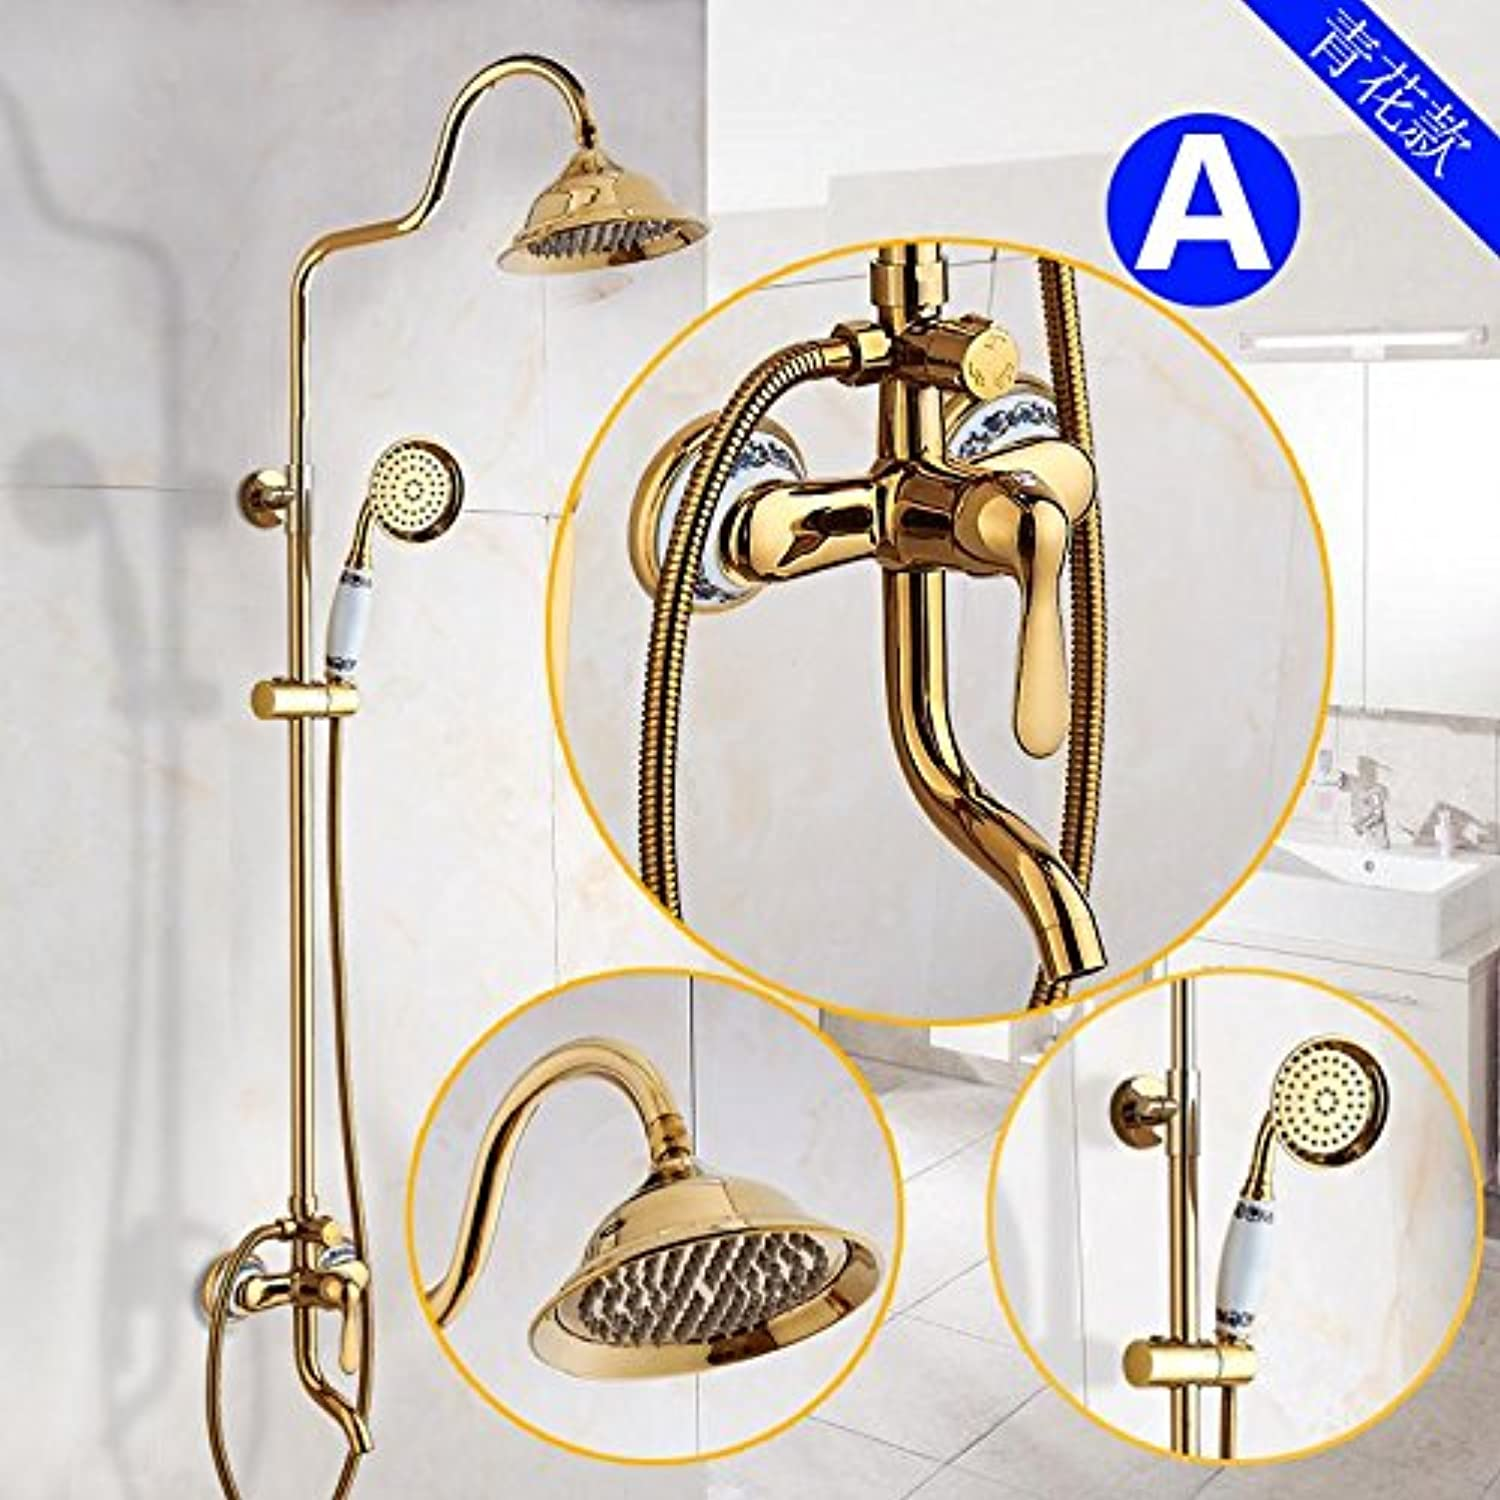 NewBorn Faucet Kitchen Or Bathroom Sink Mixer Tap The golden Shower Antique Shower Kit Full Copper Hot And Cold Shower Water Tap bluee B